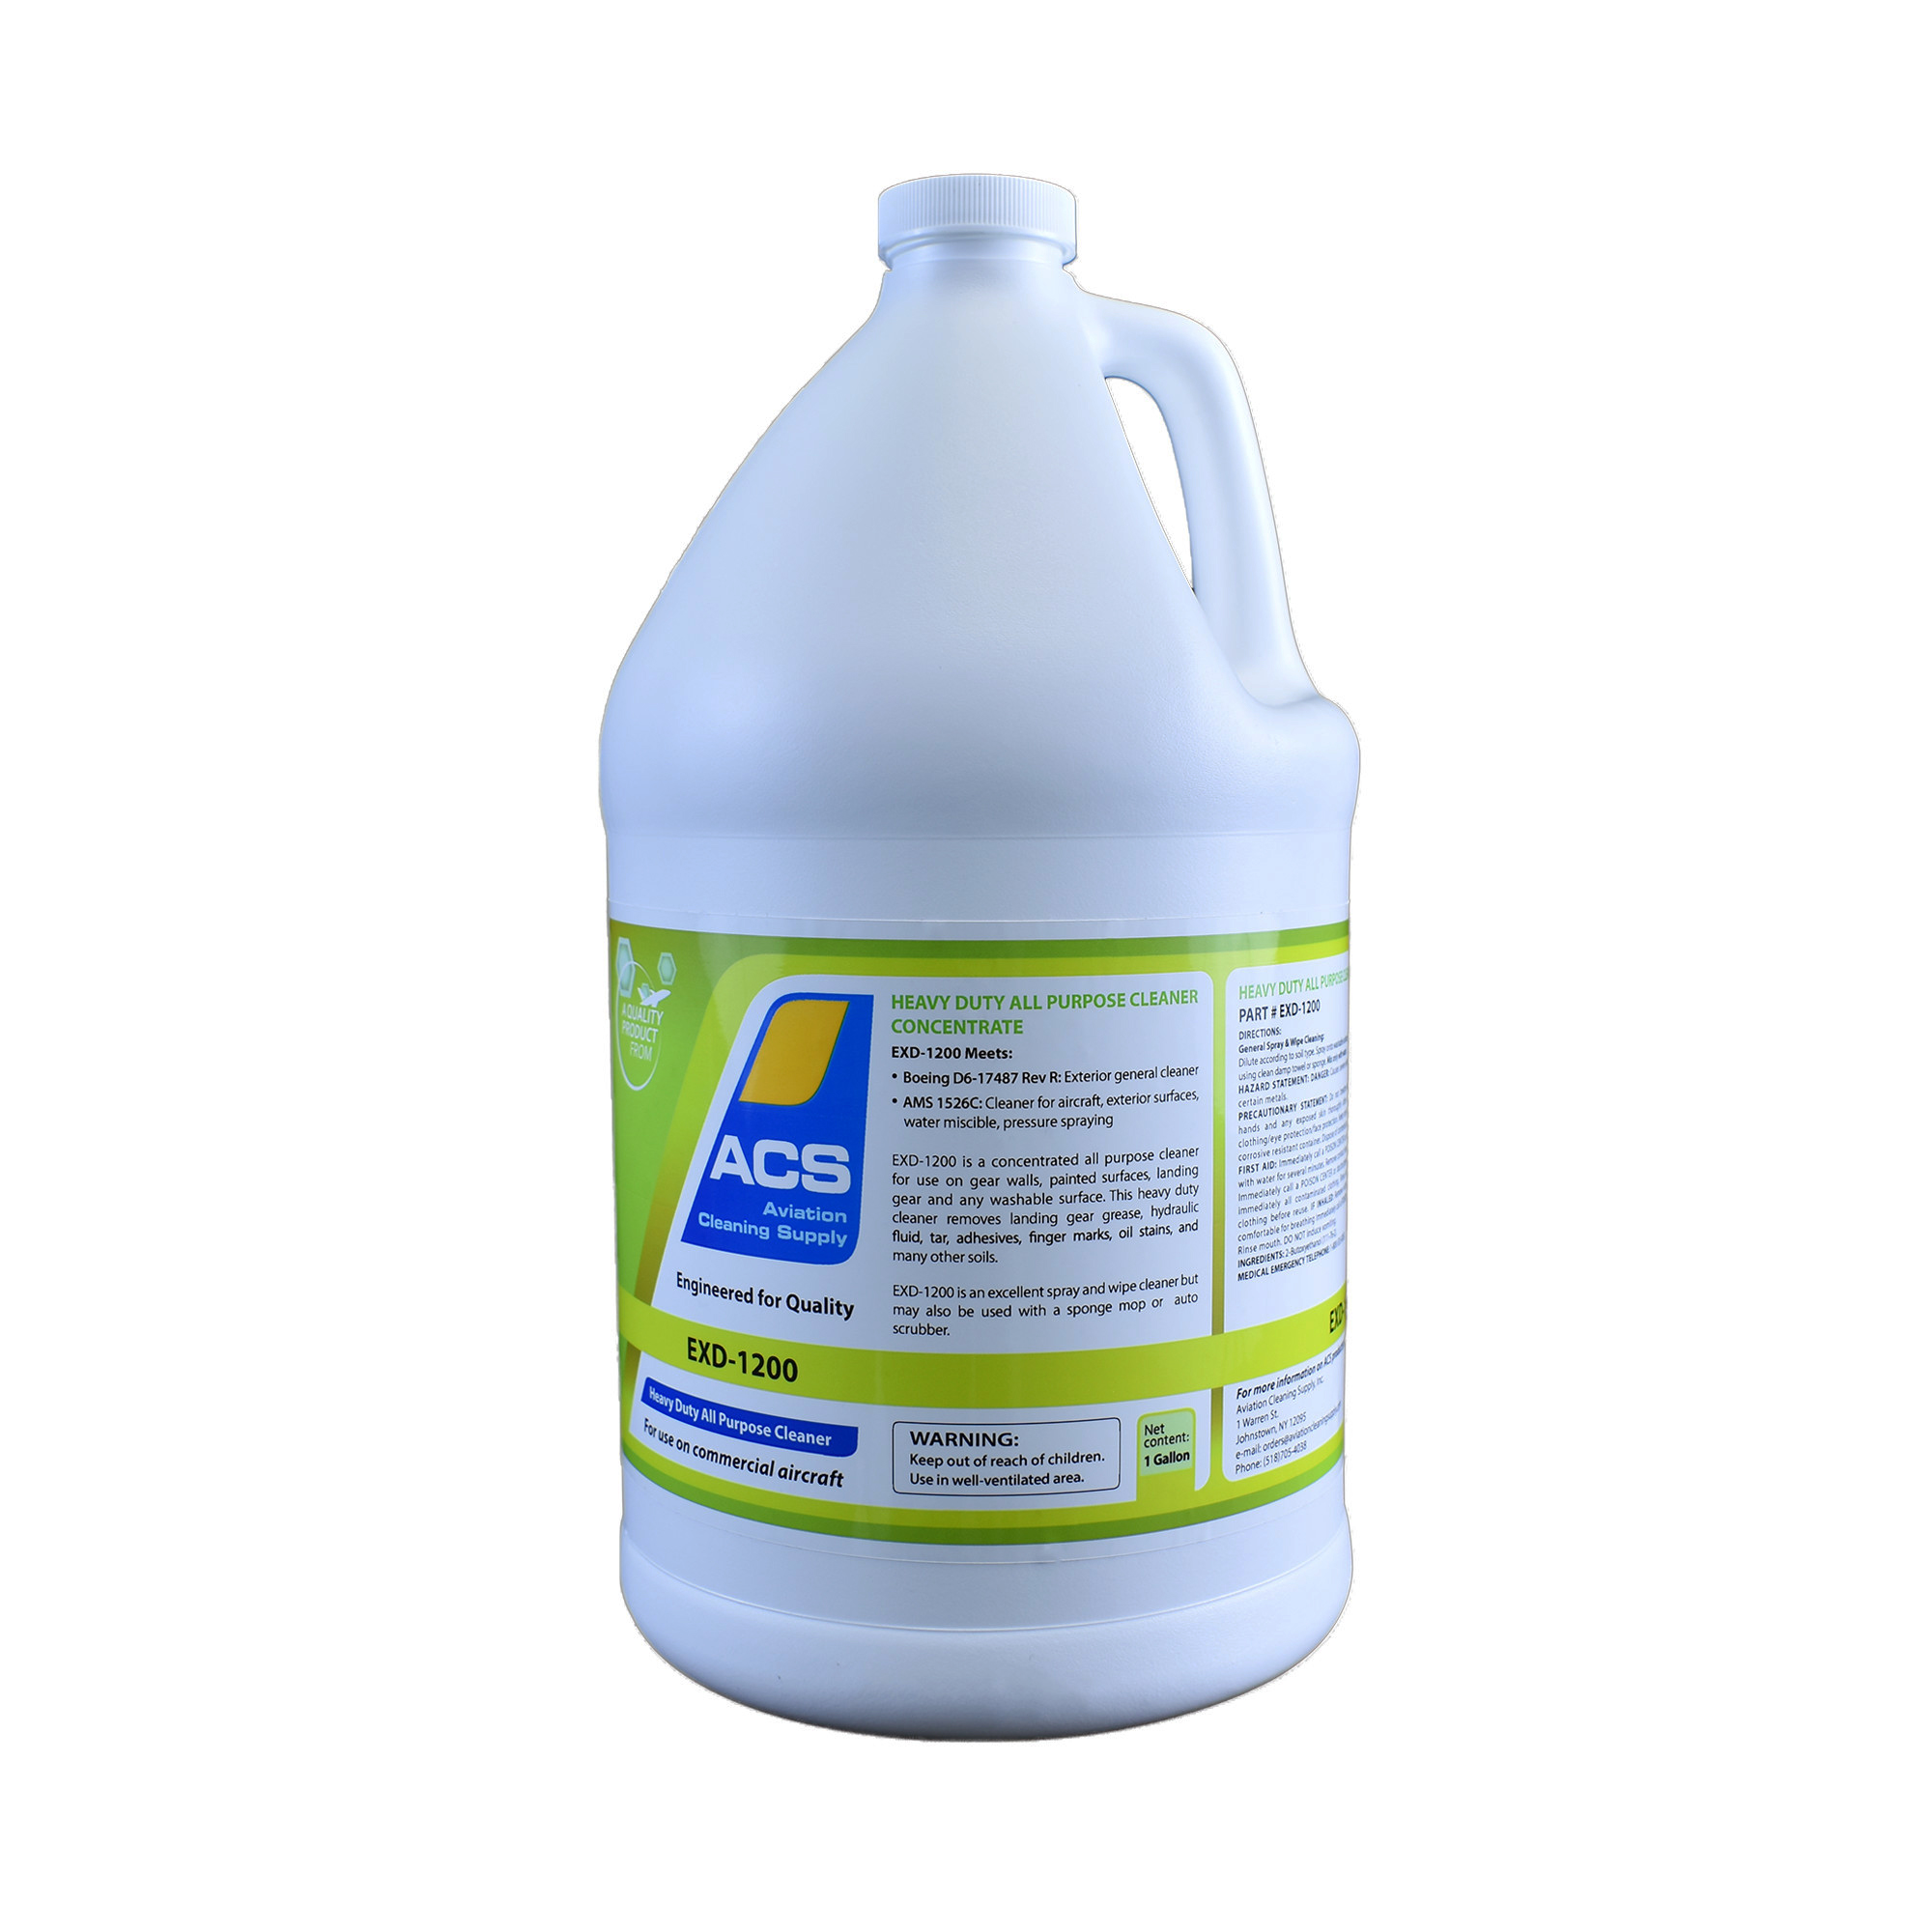 Exd 1200 Heavy Duty All Purpose Cleaner Concentrate